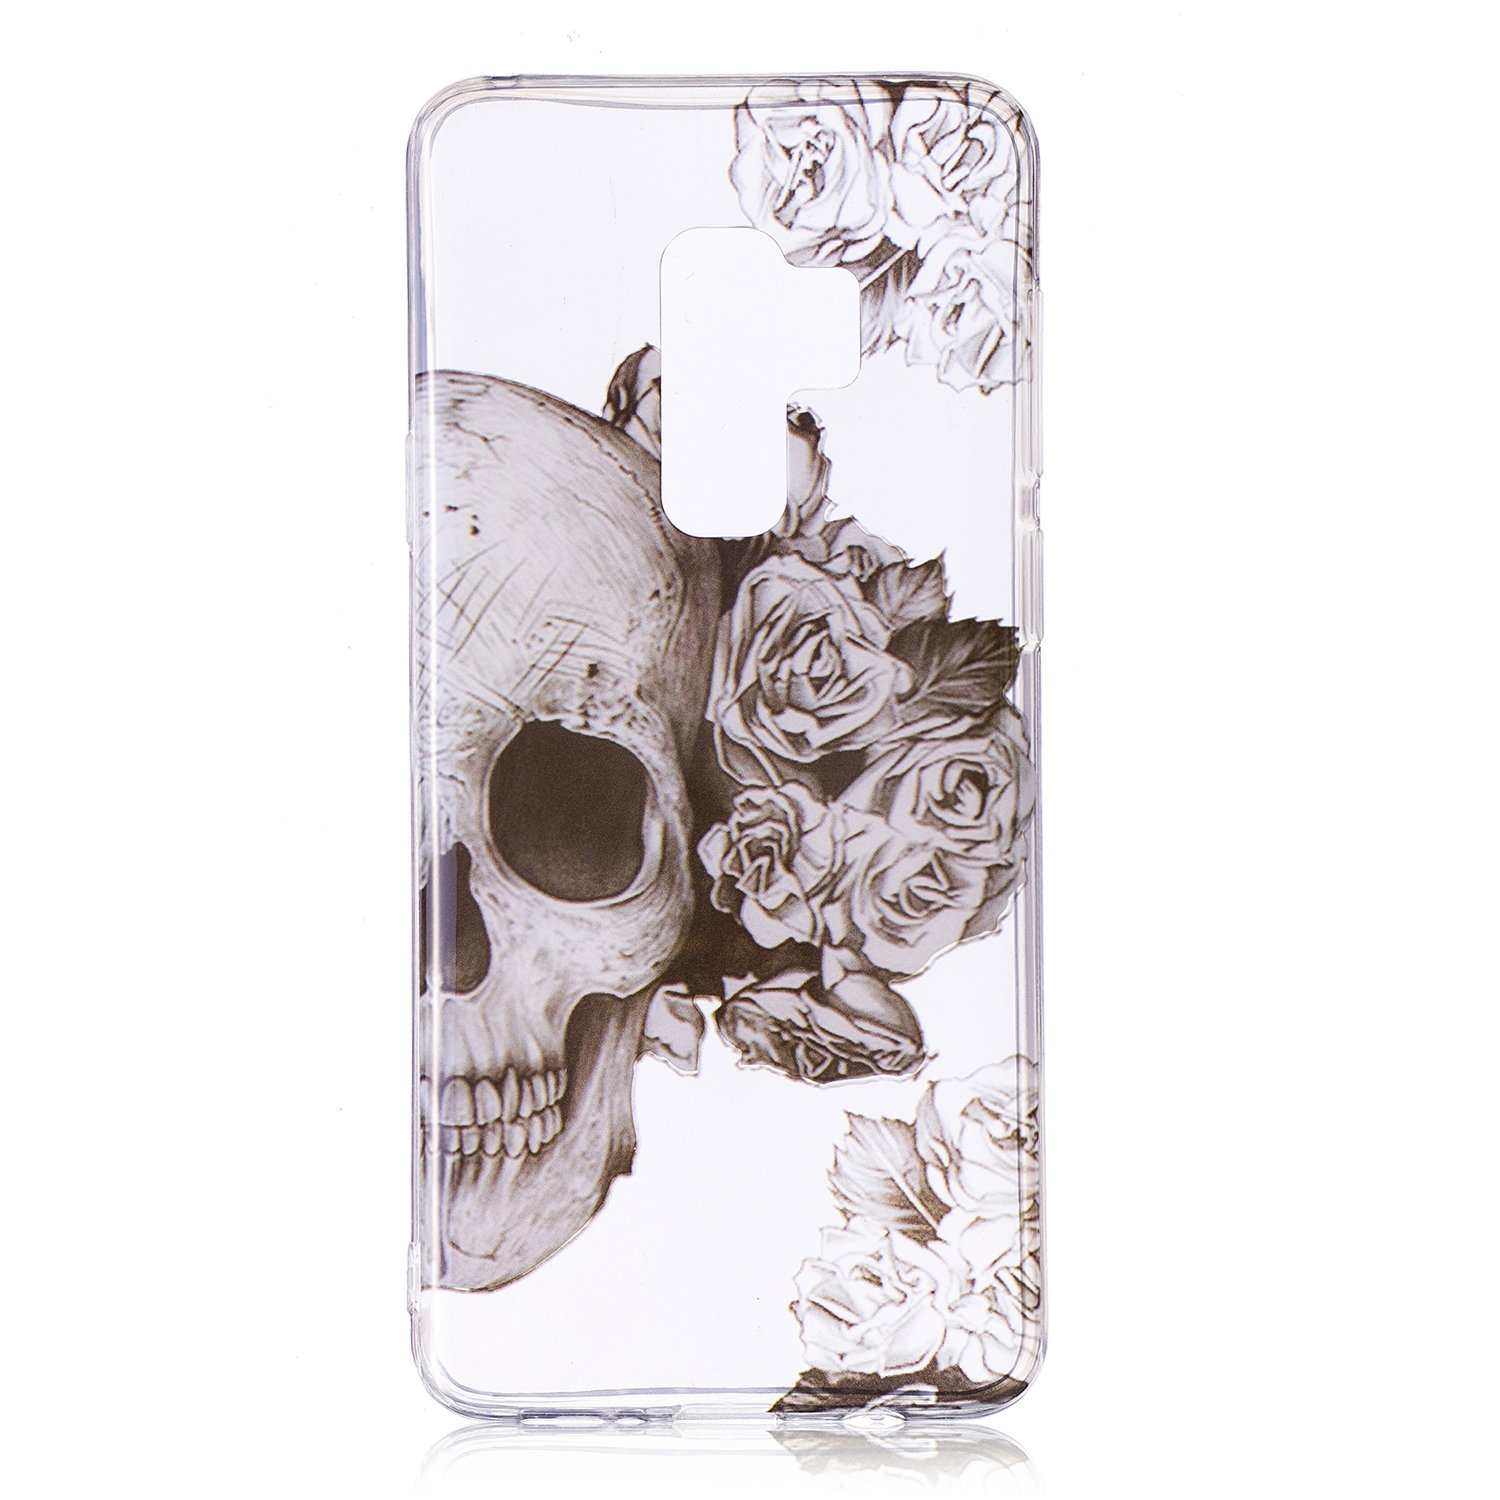 Galaxy S9 Case, for [S9 ], MerKuyom Lightweight [Clear Crystal Transparent] [Slim-Fit] Flexible Gel Soft TPU Case Skin Cover for Samsung Galaxy S9 5.8-inch, W/Stylus (Smoke Half Flower Skull)